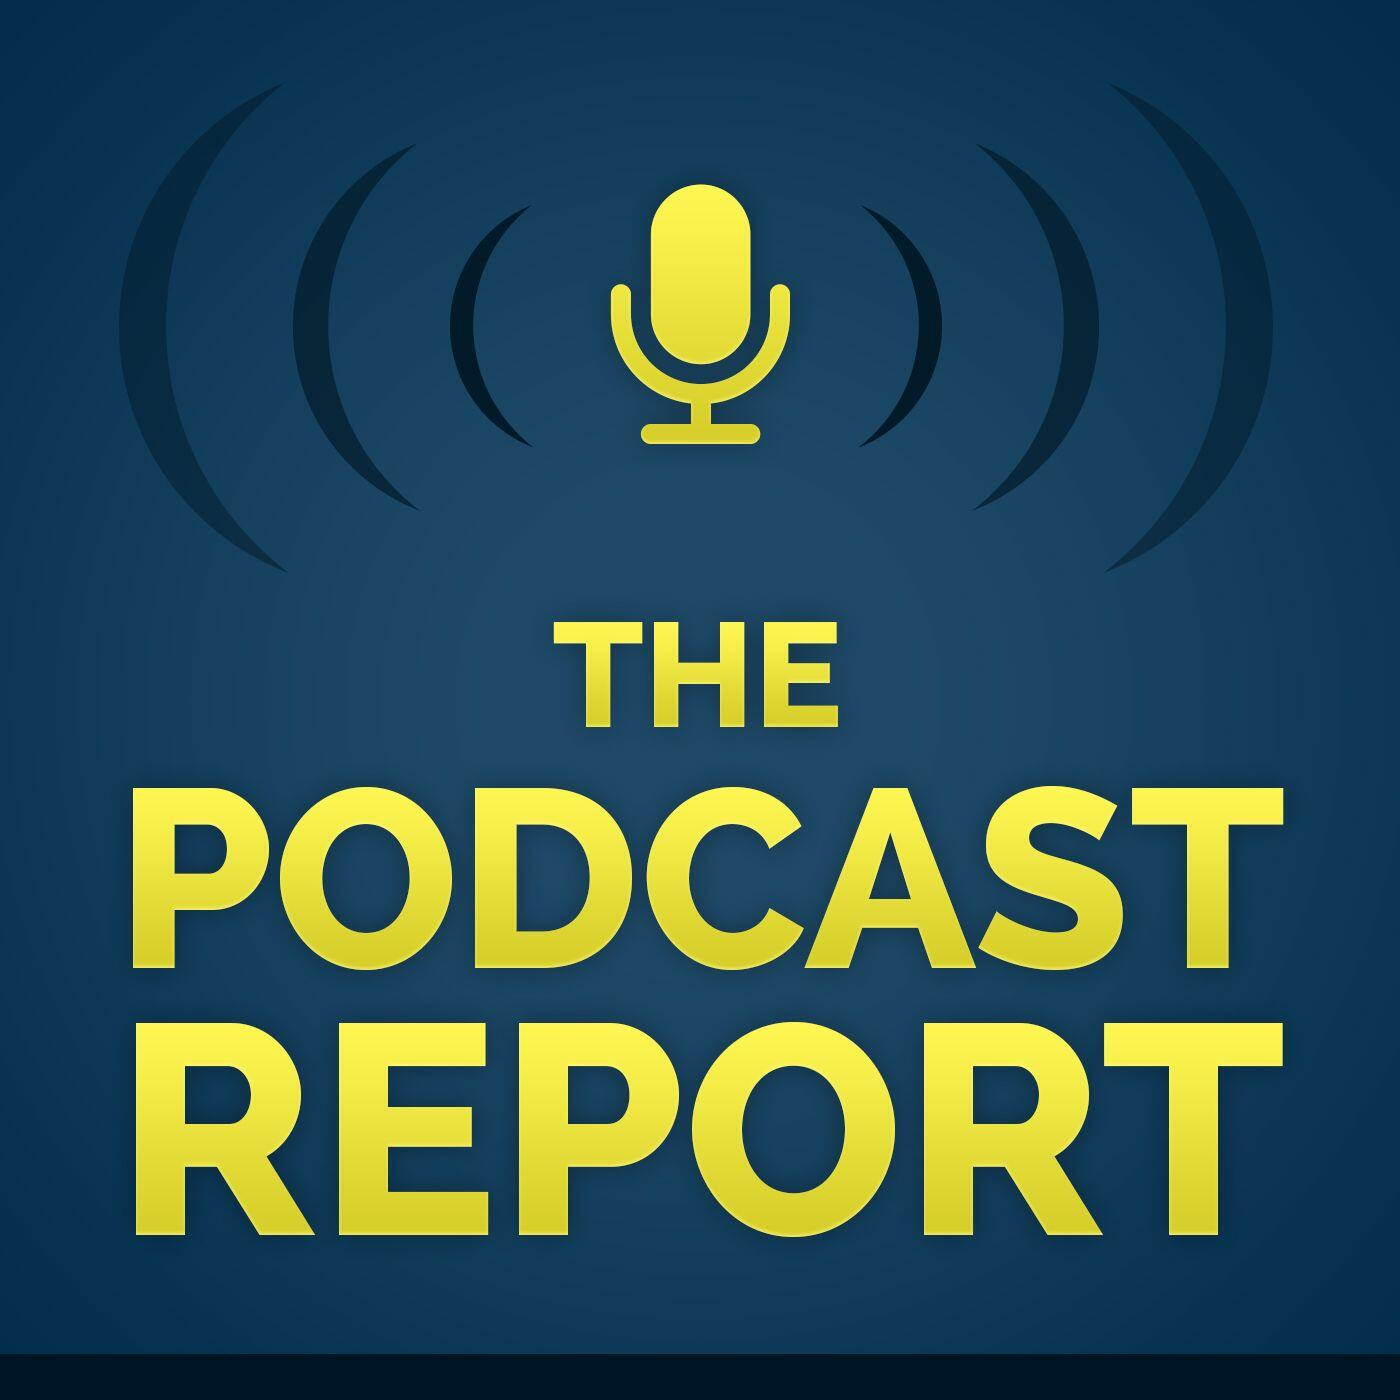 Listen to A Few Thoughts On The New Apple Podcast Pages And What They Might Mean To Podcasters | The Podcast Report With Paul Colligan | Podcasts